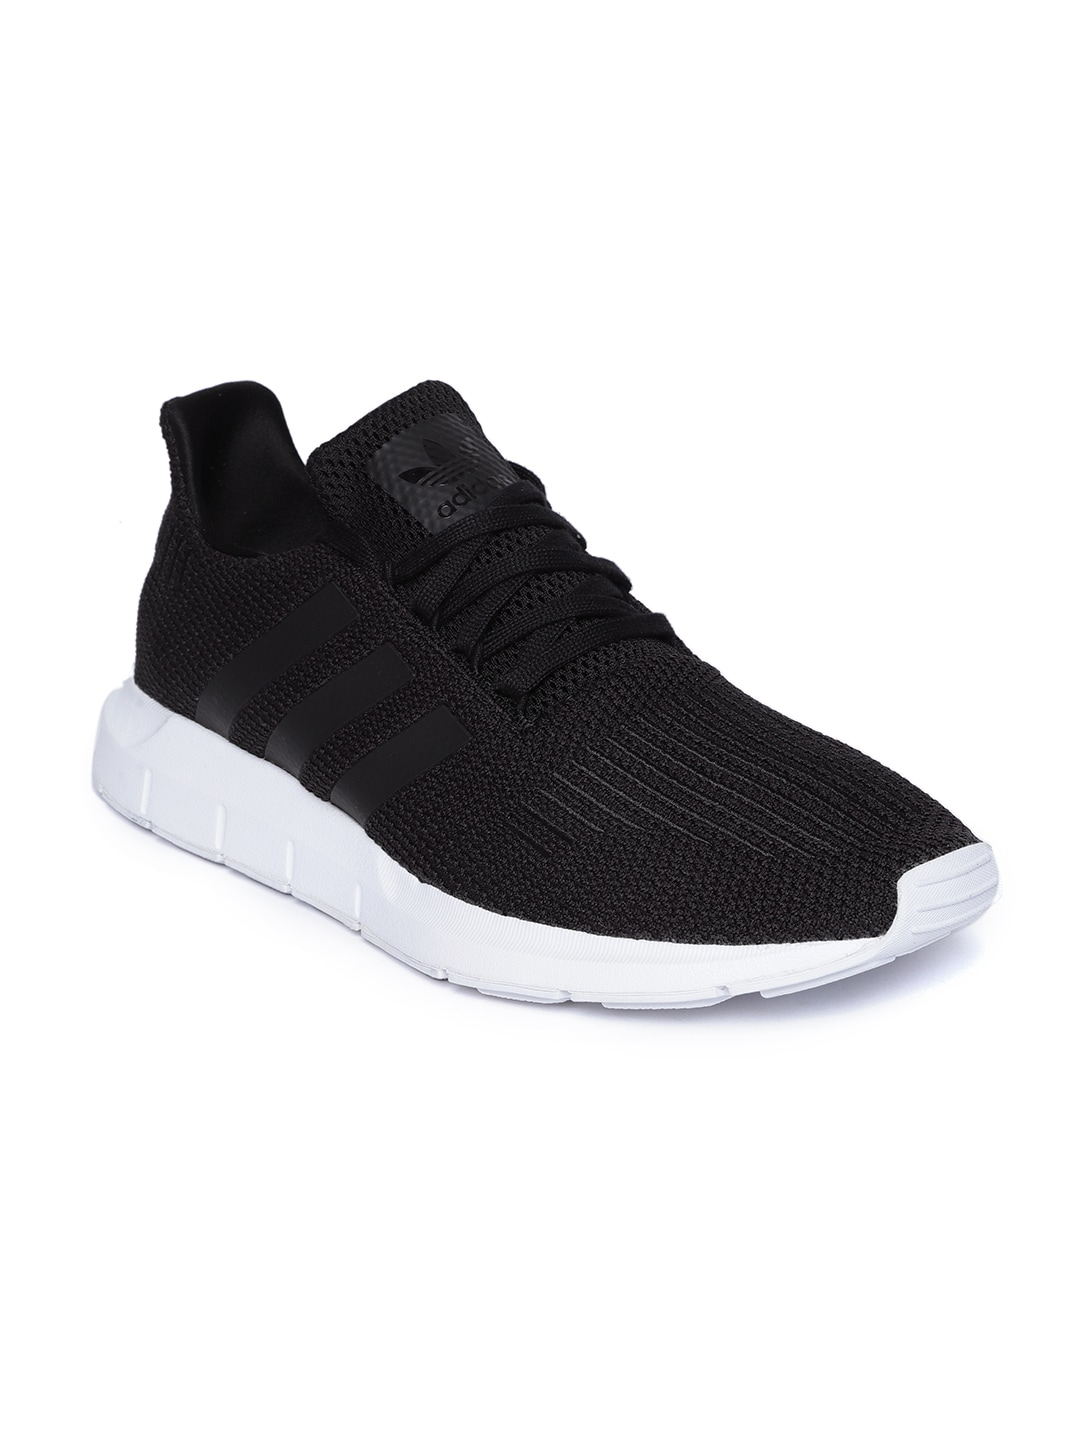 3e9fe41402a1e Buy Adidas Originals Men Black Swift Run Barrier Sneakers - Casual ...